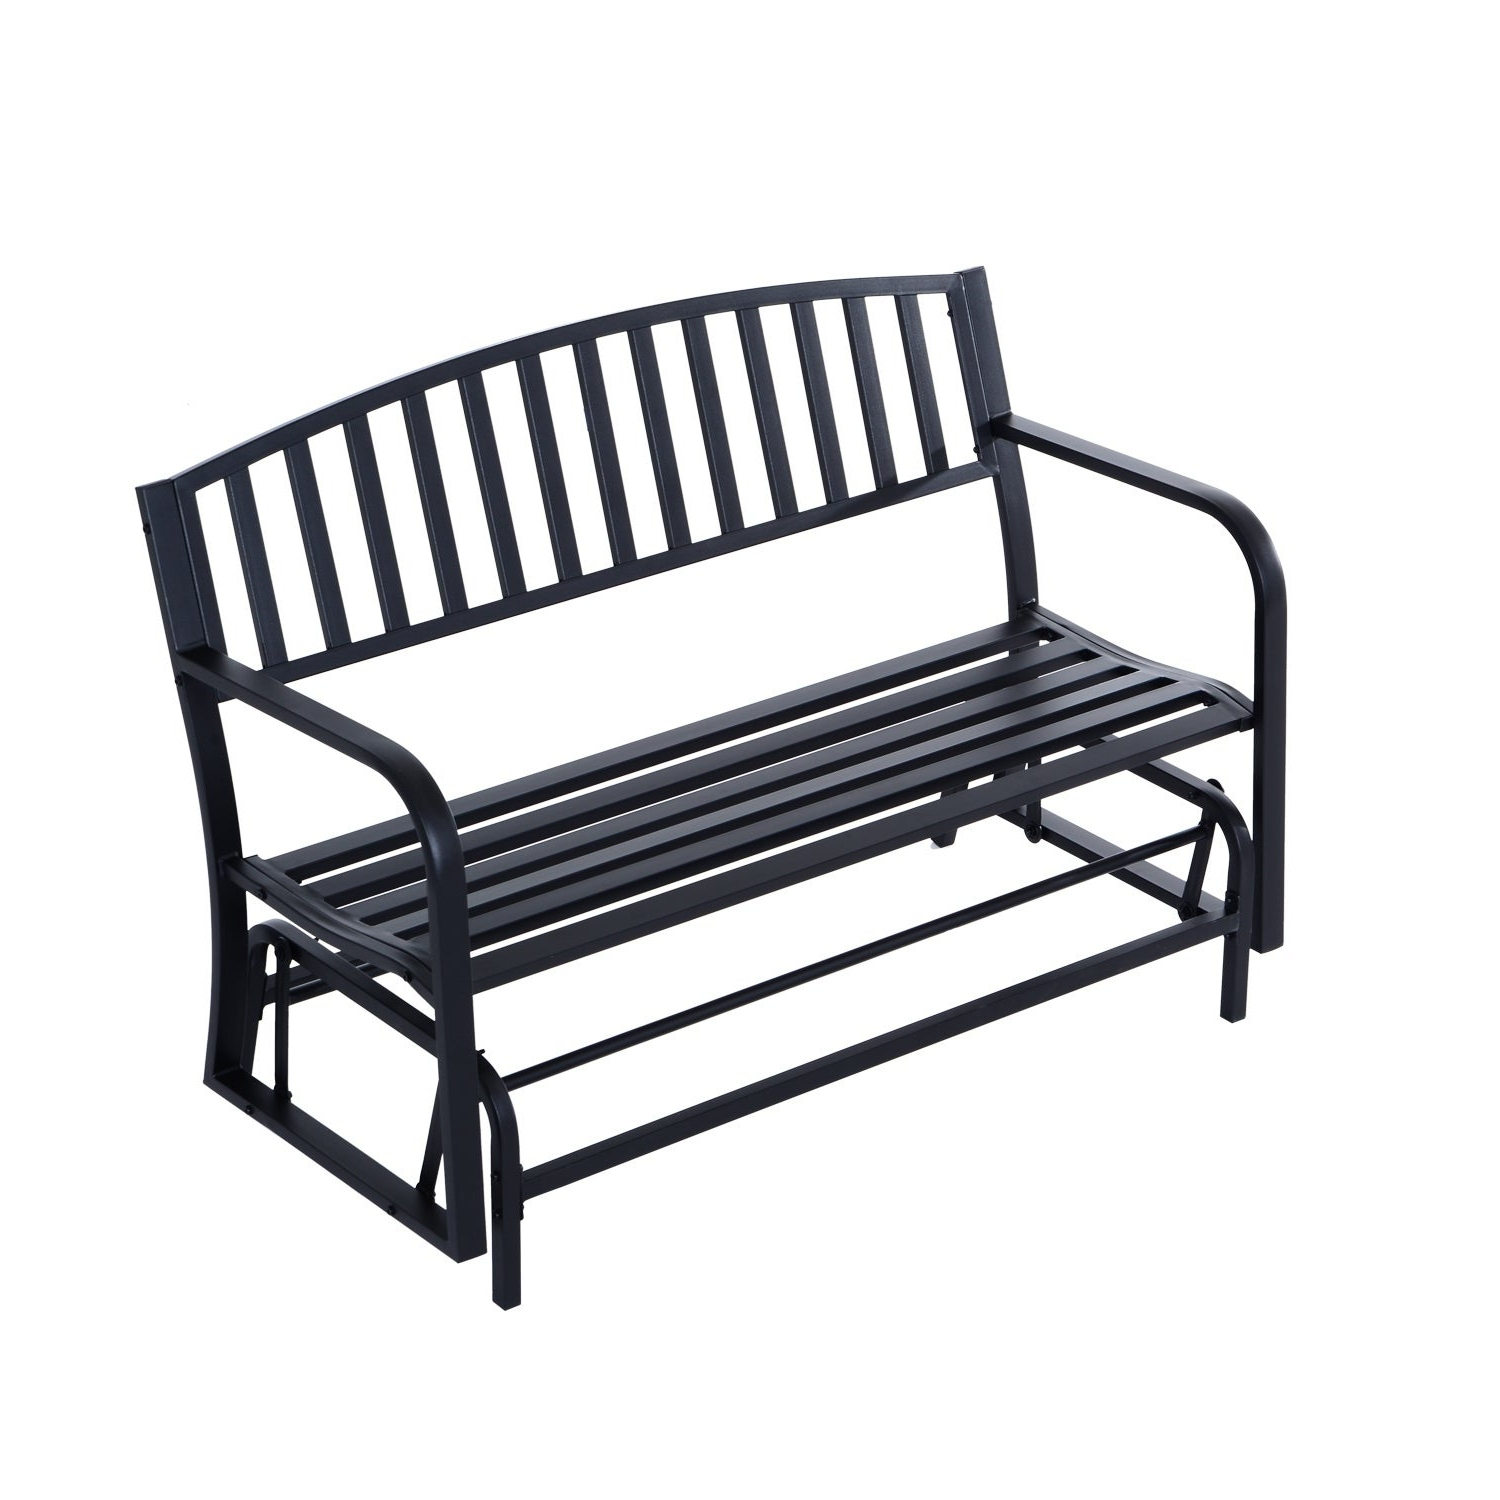 Most Recent Outsunny 50 Inch Outdoor Steel Patio Swing Glider Bench – Black Pertaining To 2 Person Antique Black Iron Outdoor Gliders (View 16 of 25)